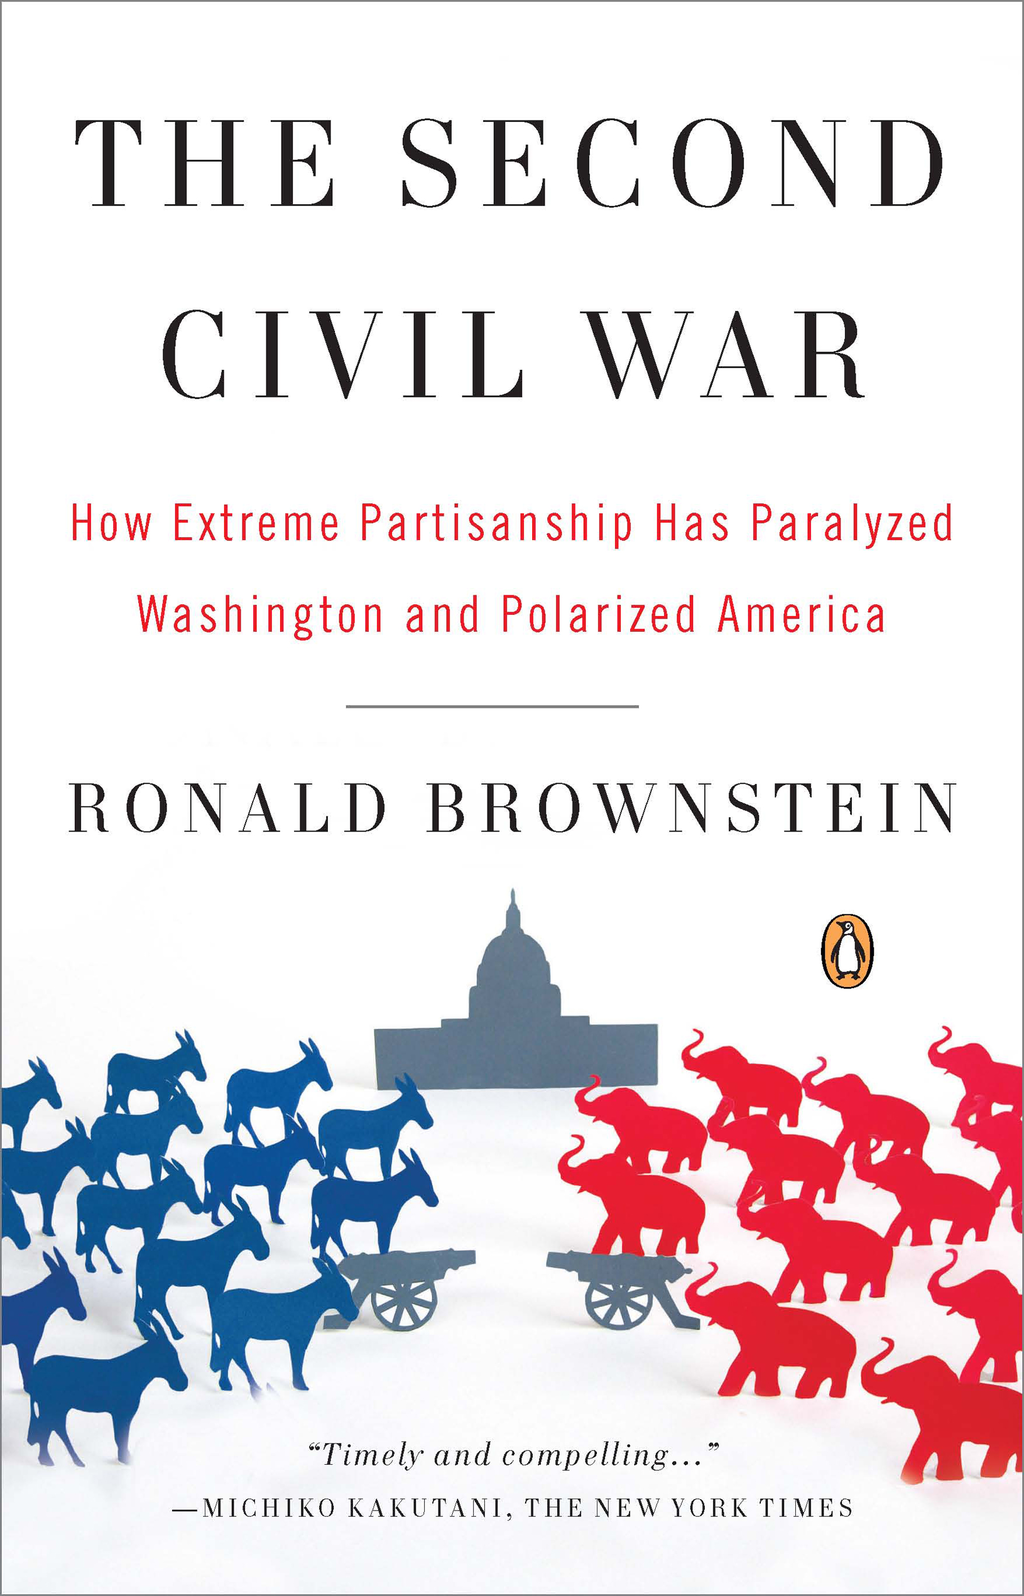 The Second Civil War How Extreme Partisanship Has Paralyzed Washington and Polarized America